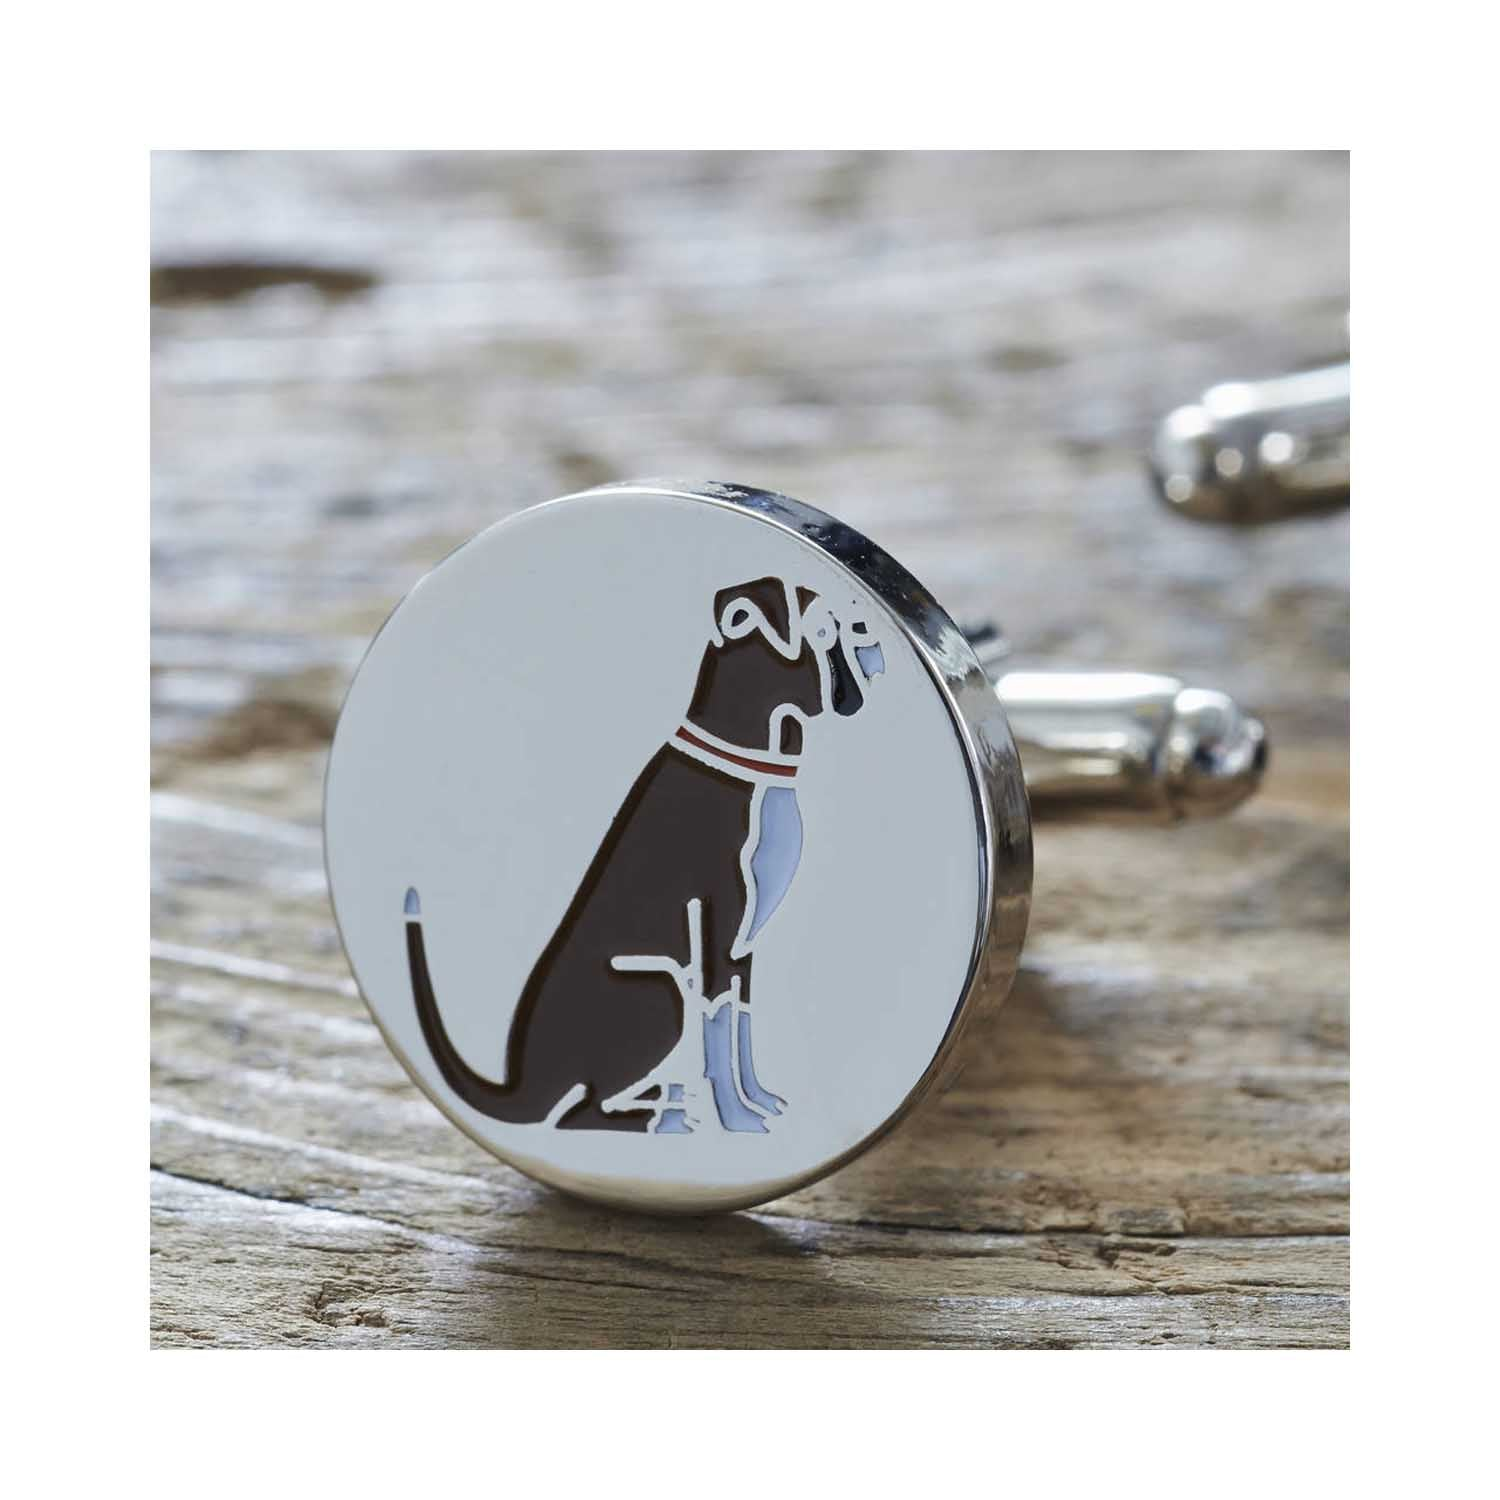 Dog Lover Gifts available at Dog Krazy Gifts - Archie The Boxer Cufflinks and Dog Tag Set - part of the Sweet William range of gifts for dog lovers available from Dog Krazy Gifts